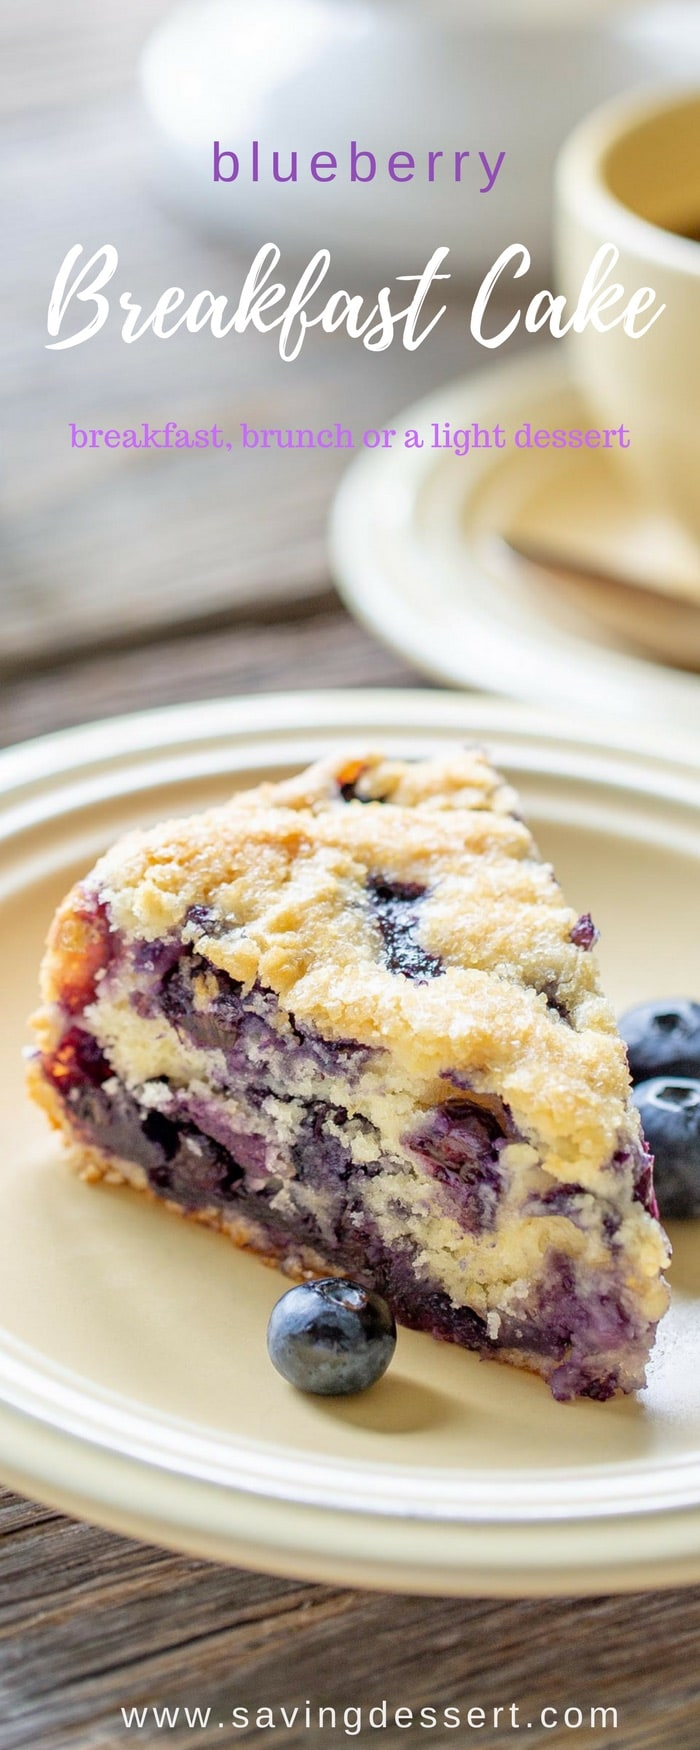 """Blueberry Breakfast Cake - perfect for breakfast, brunch or a light dessert. This luscious cake is adeliciously moist, lightly sweet """"coffee"""" cake bursting with juicy ripe blueberries. #savingroomfordessert #blueberry #breakfast #brunch #blueberrycake #brunchcake #blueberrybreakfastcake"""